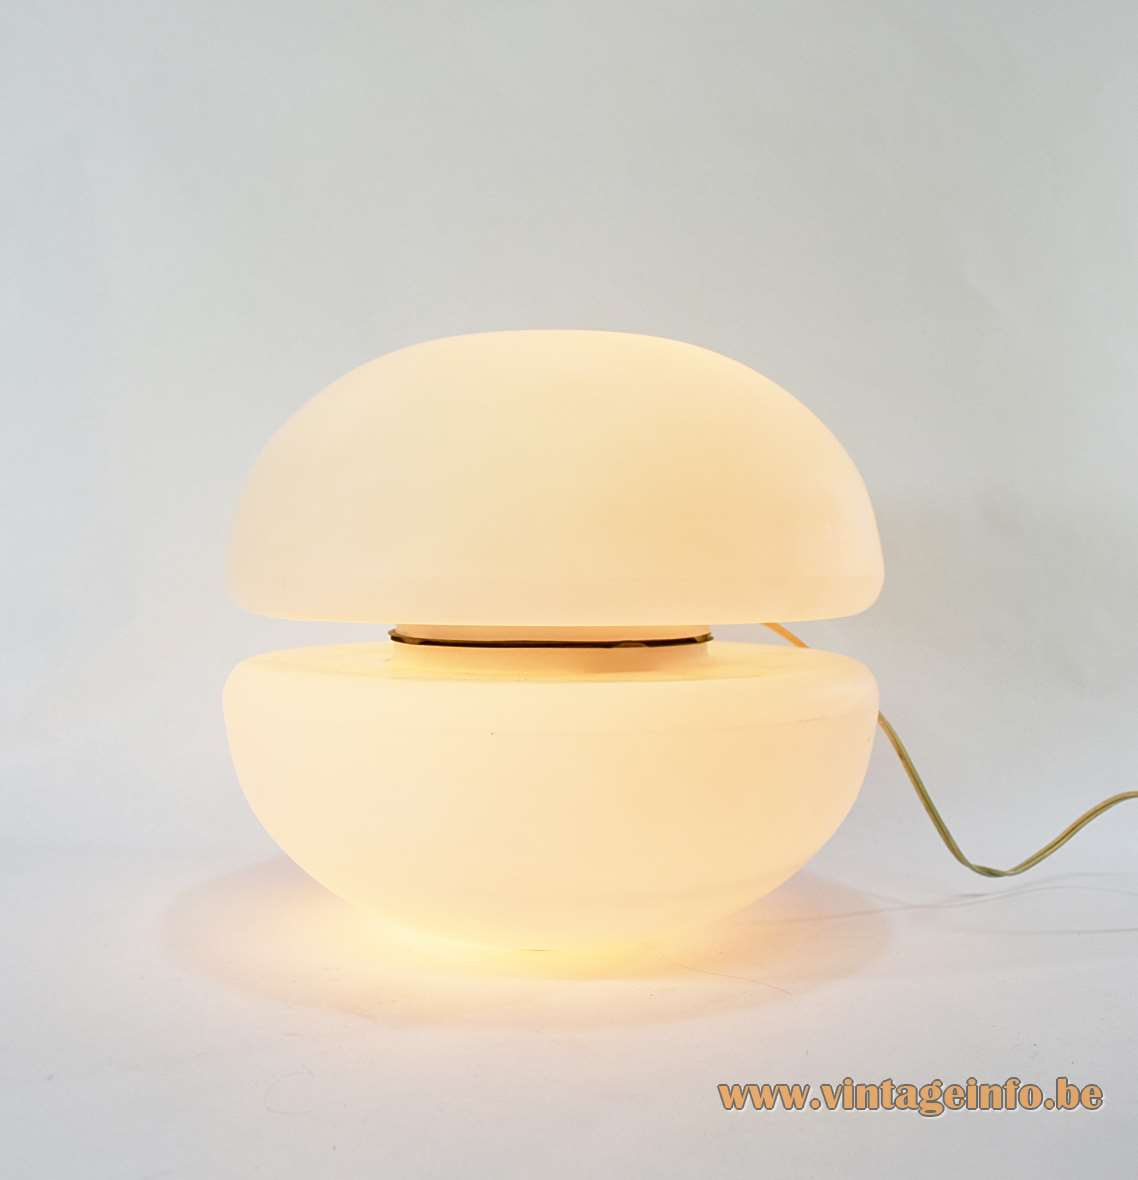 Reggiani floor or table lamp 2 frosted half round white opal glass lampshades hamburger 1950s 1960s